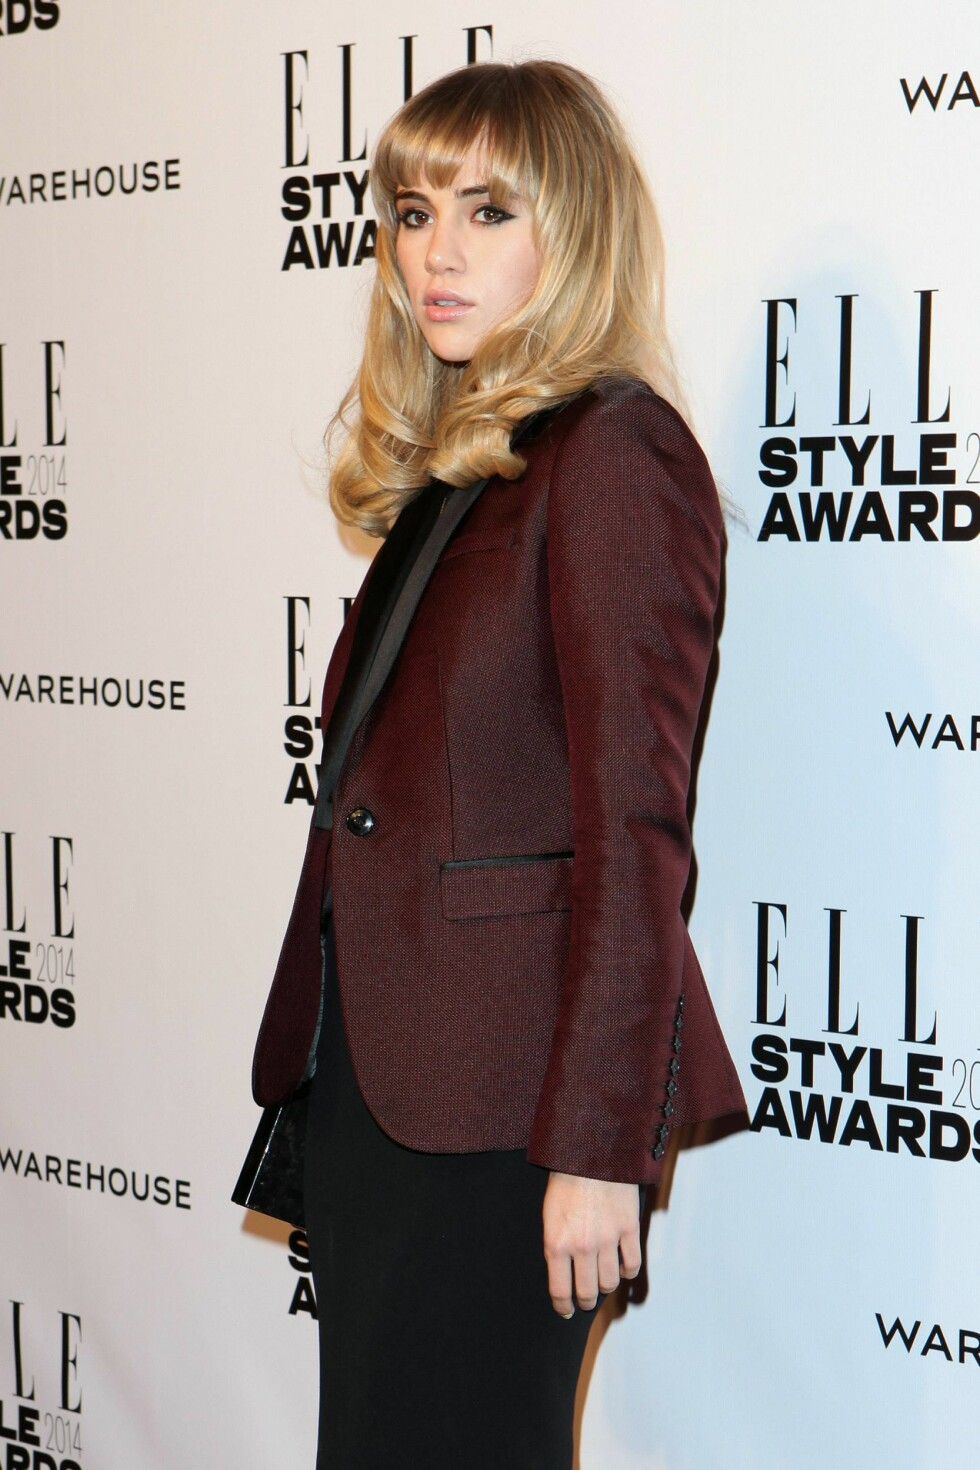 Suki Waterhouse Foto: imago/Future Image/ All Over Press